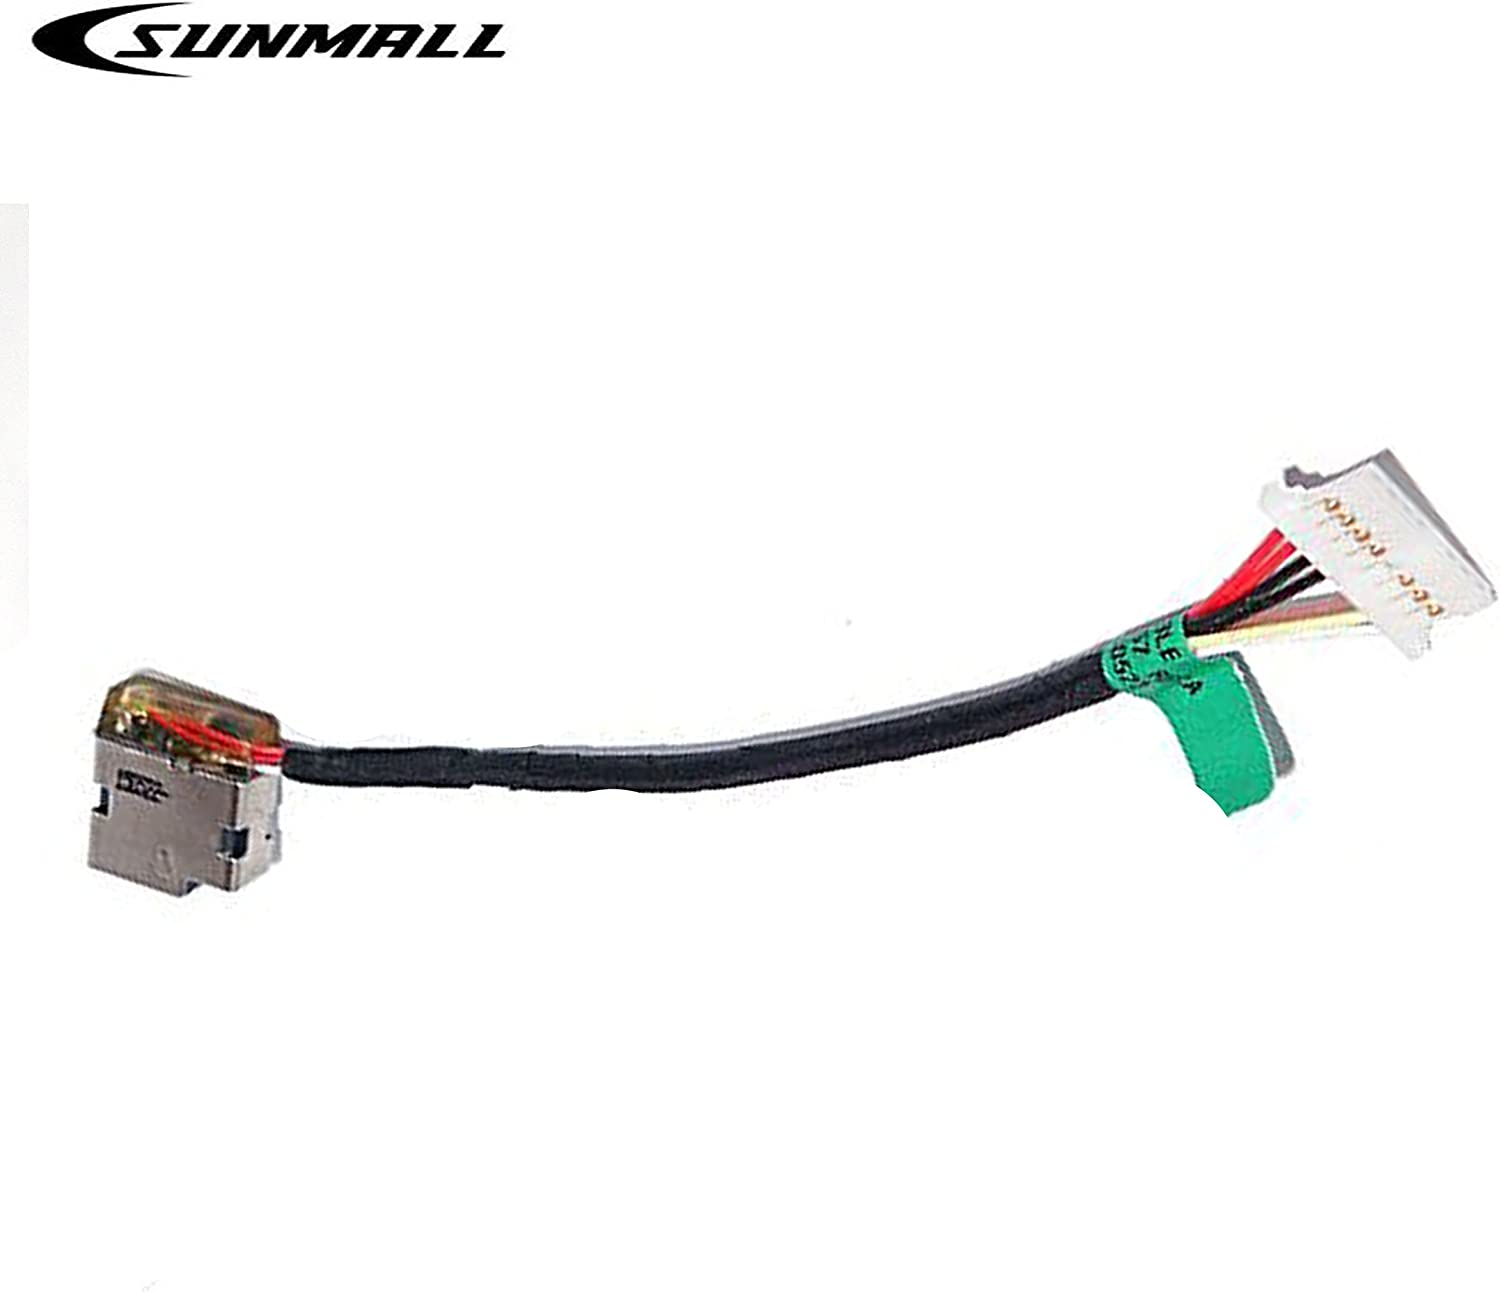 DC IN Power Jack Cable Connector For HP 240 246 250 255 G4 G5 799736-S57 F57 Y57